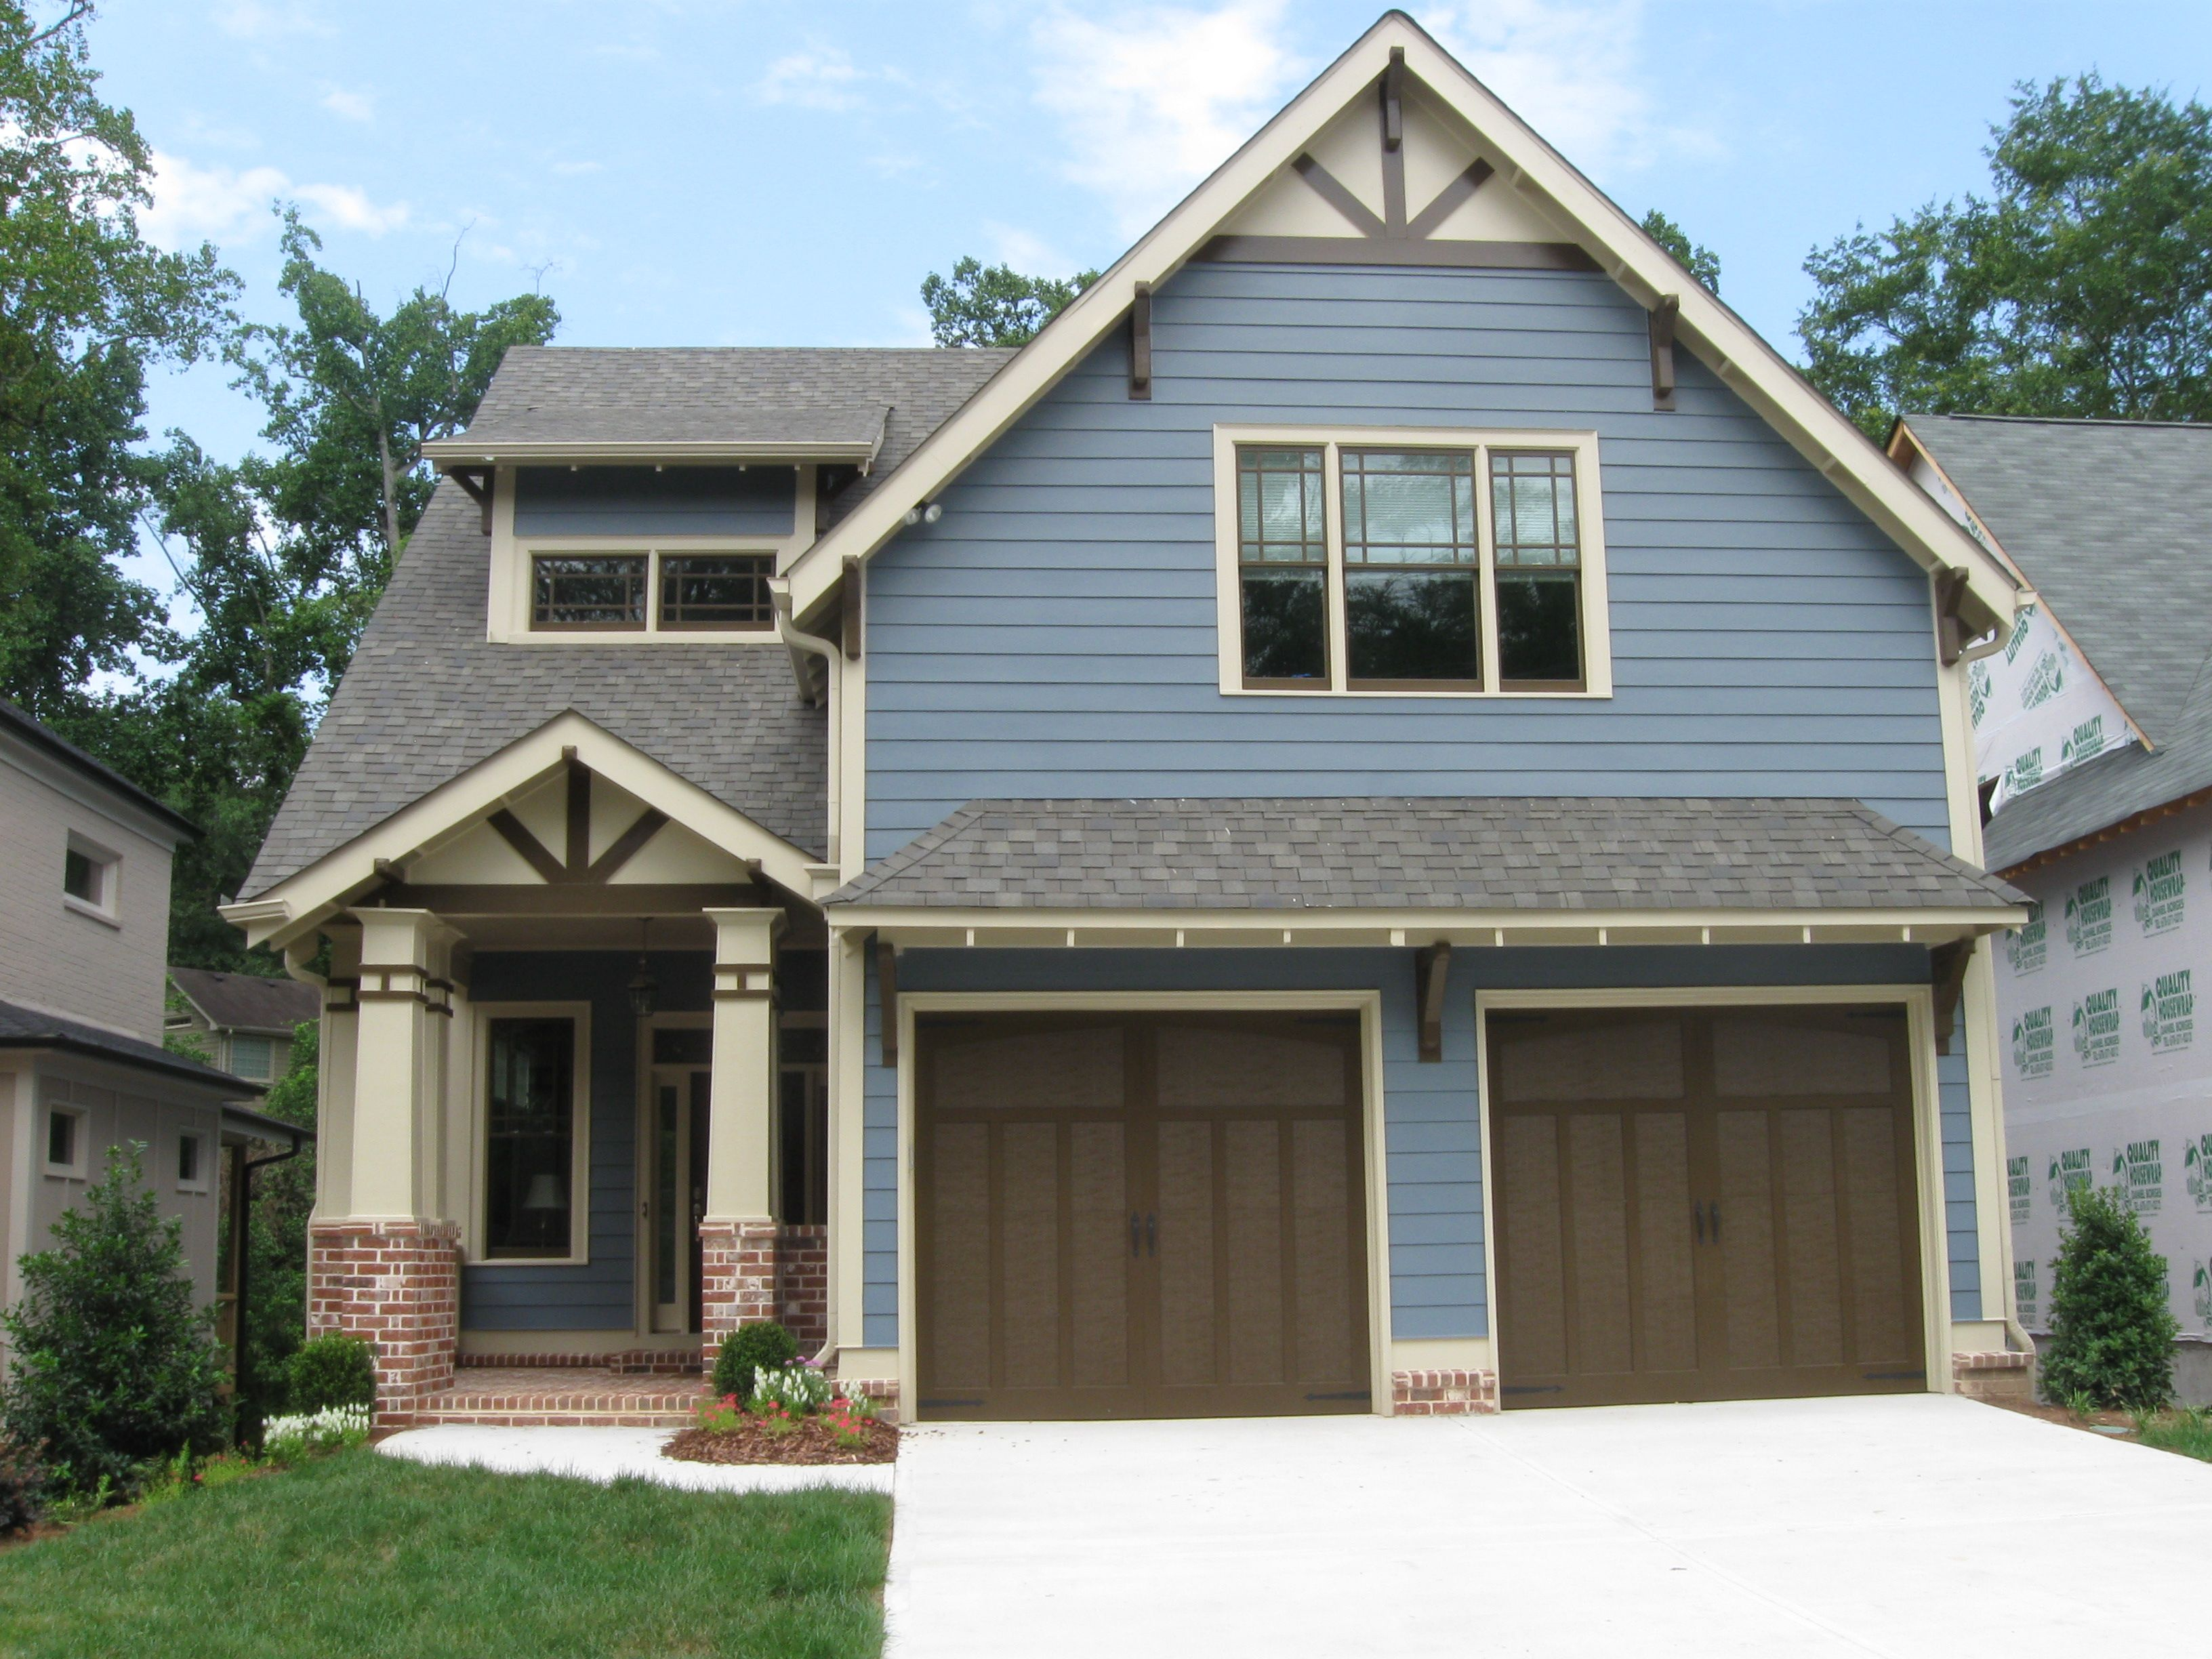 Garage exterior paint ideas - 7 Tips To Choose Roof Colors Fh Home